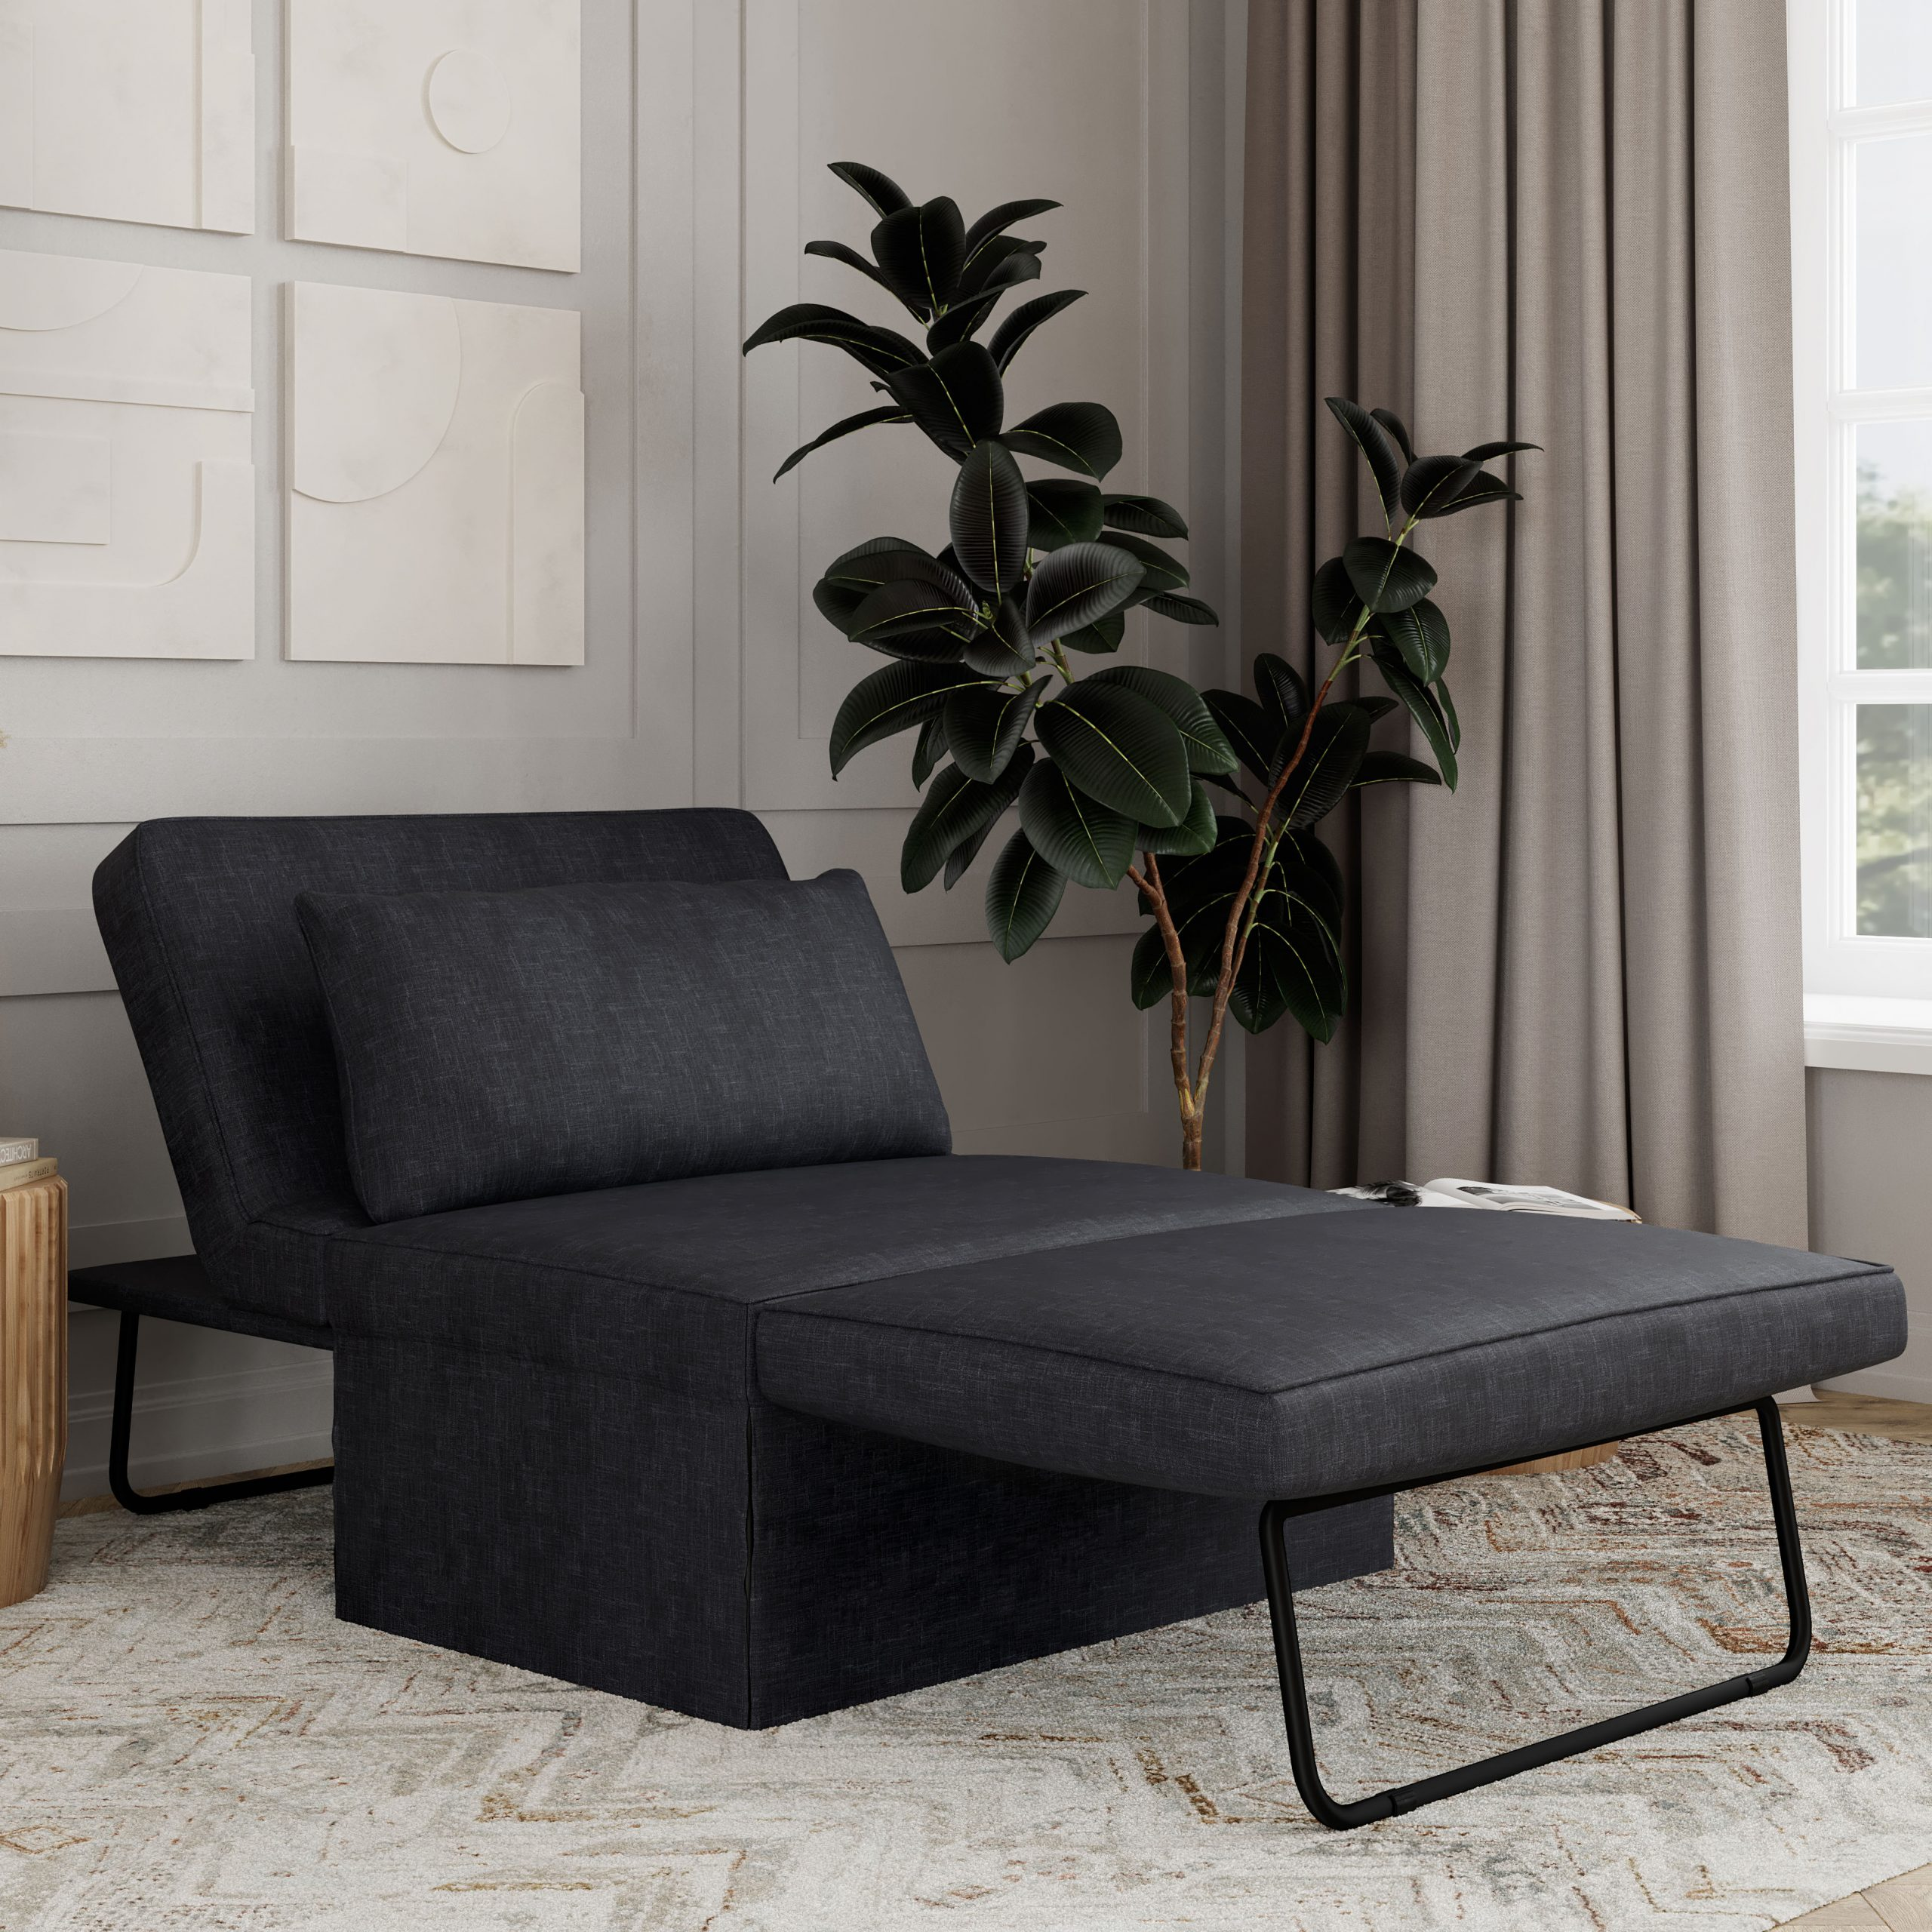 The Best Affordable Sleeper Chairs And Ottomans | Apartment With Regard To New London Convertible Chairs (View 12 of 15)